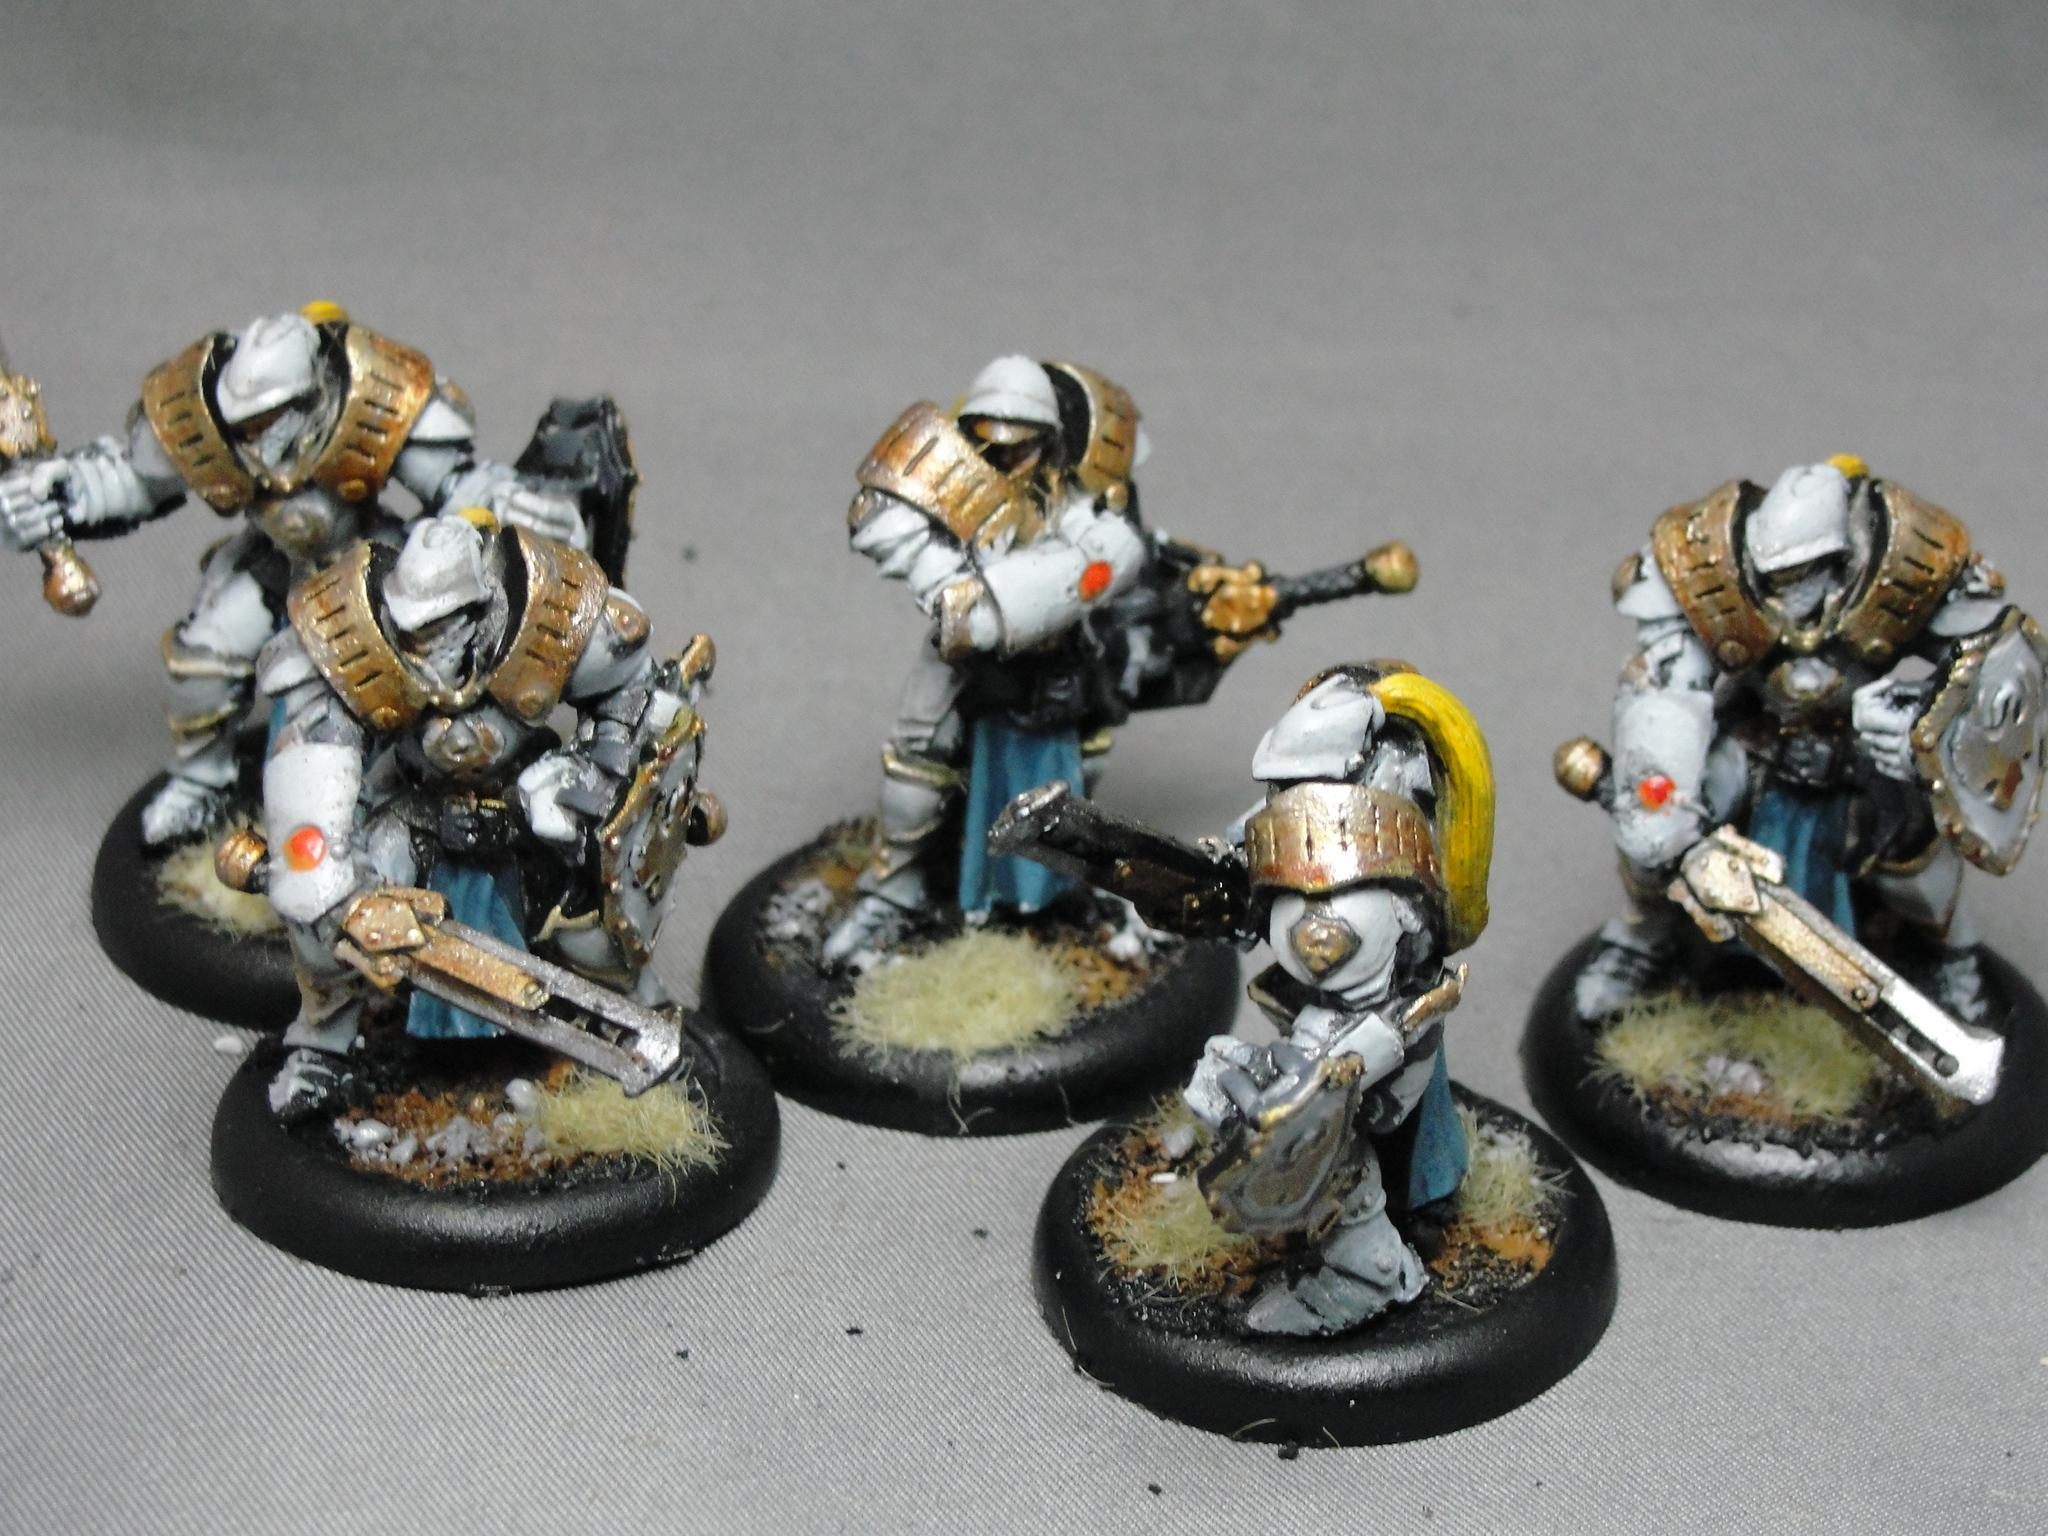 Warmachine, Cygnar, Sword Knights